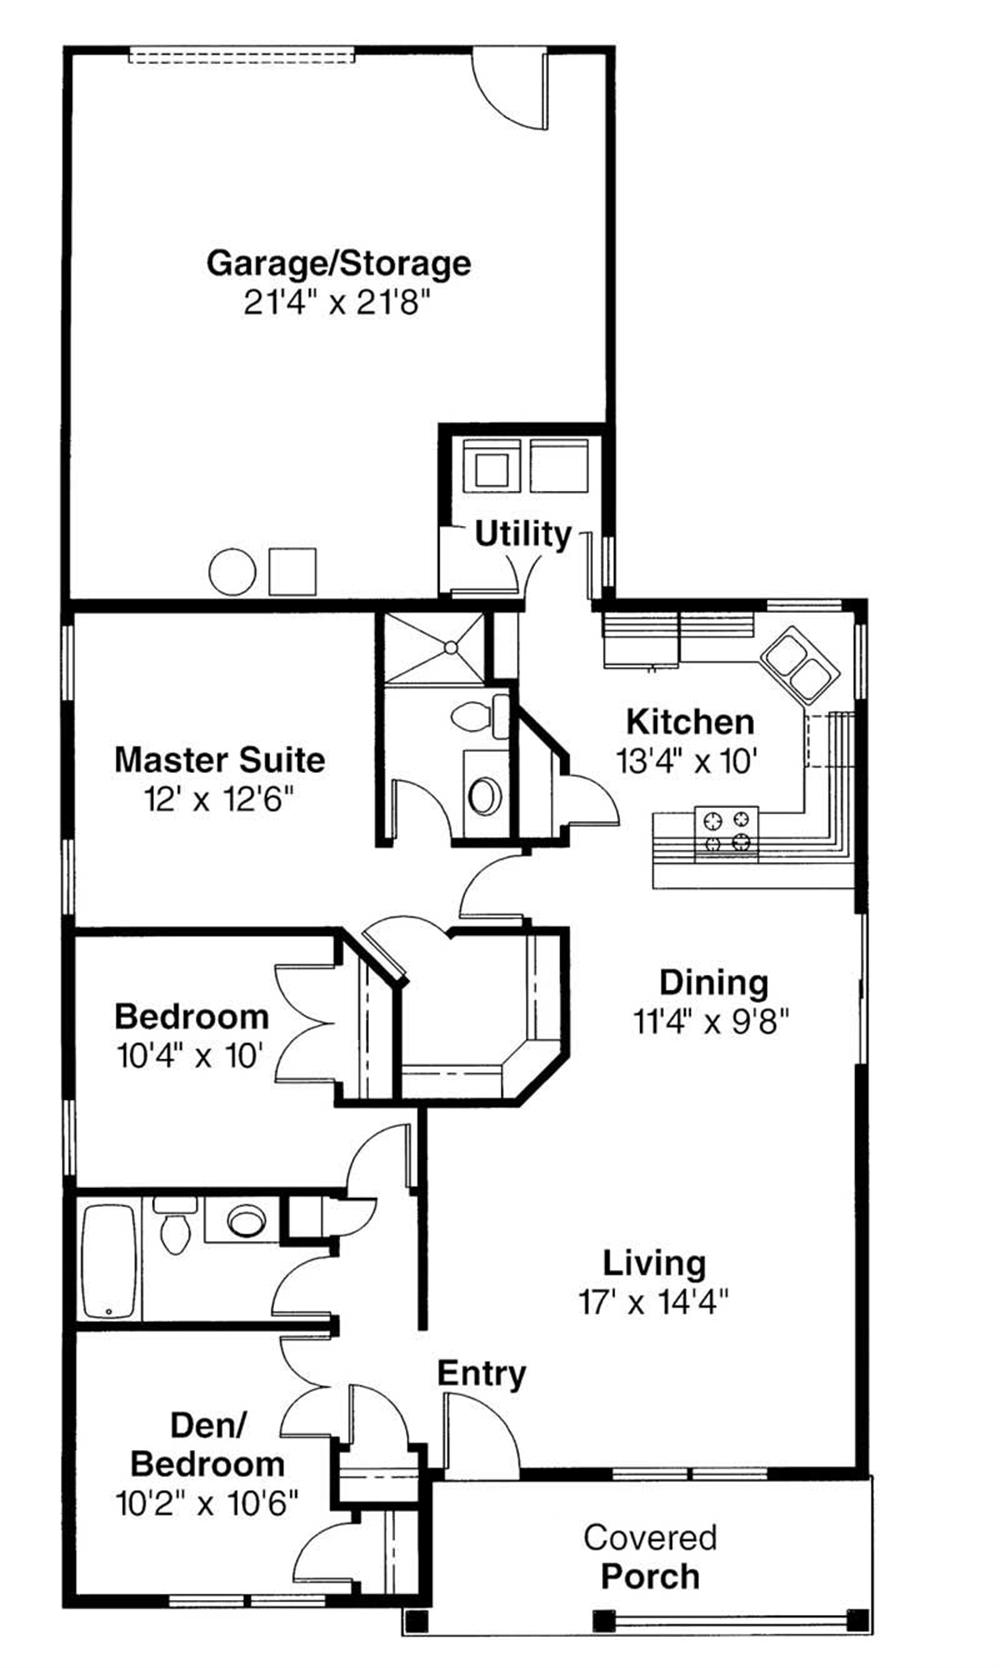 First Floor Floor Plan for Cleveland